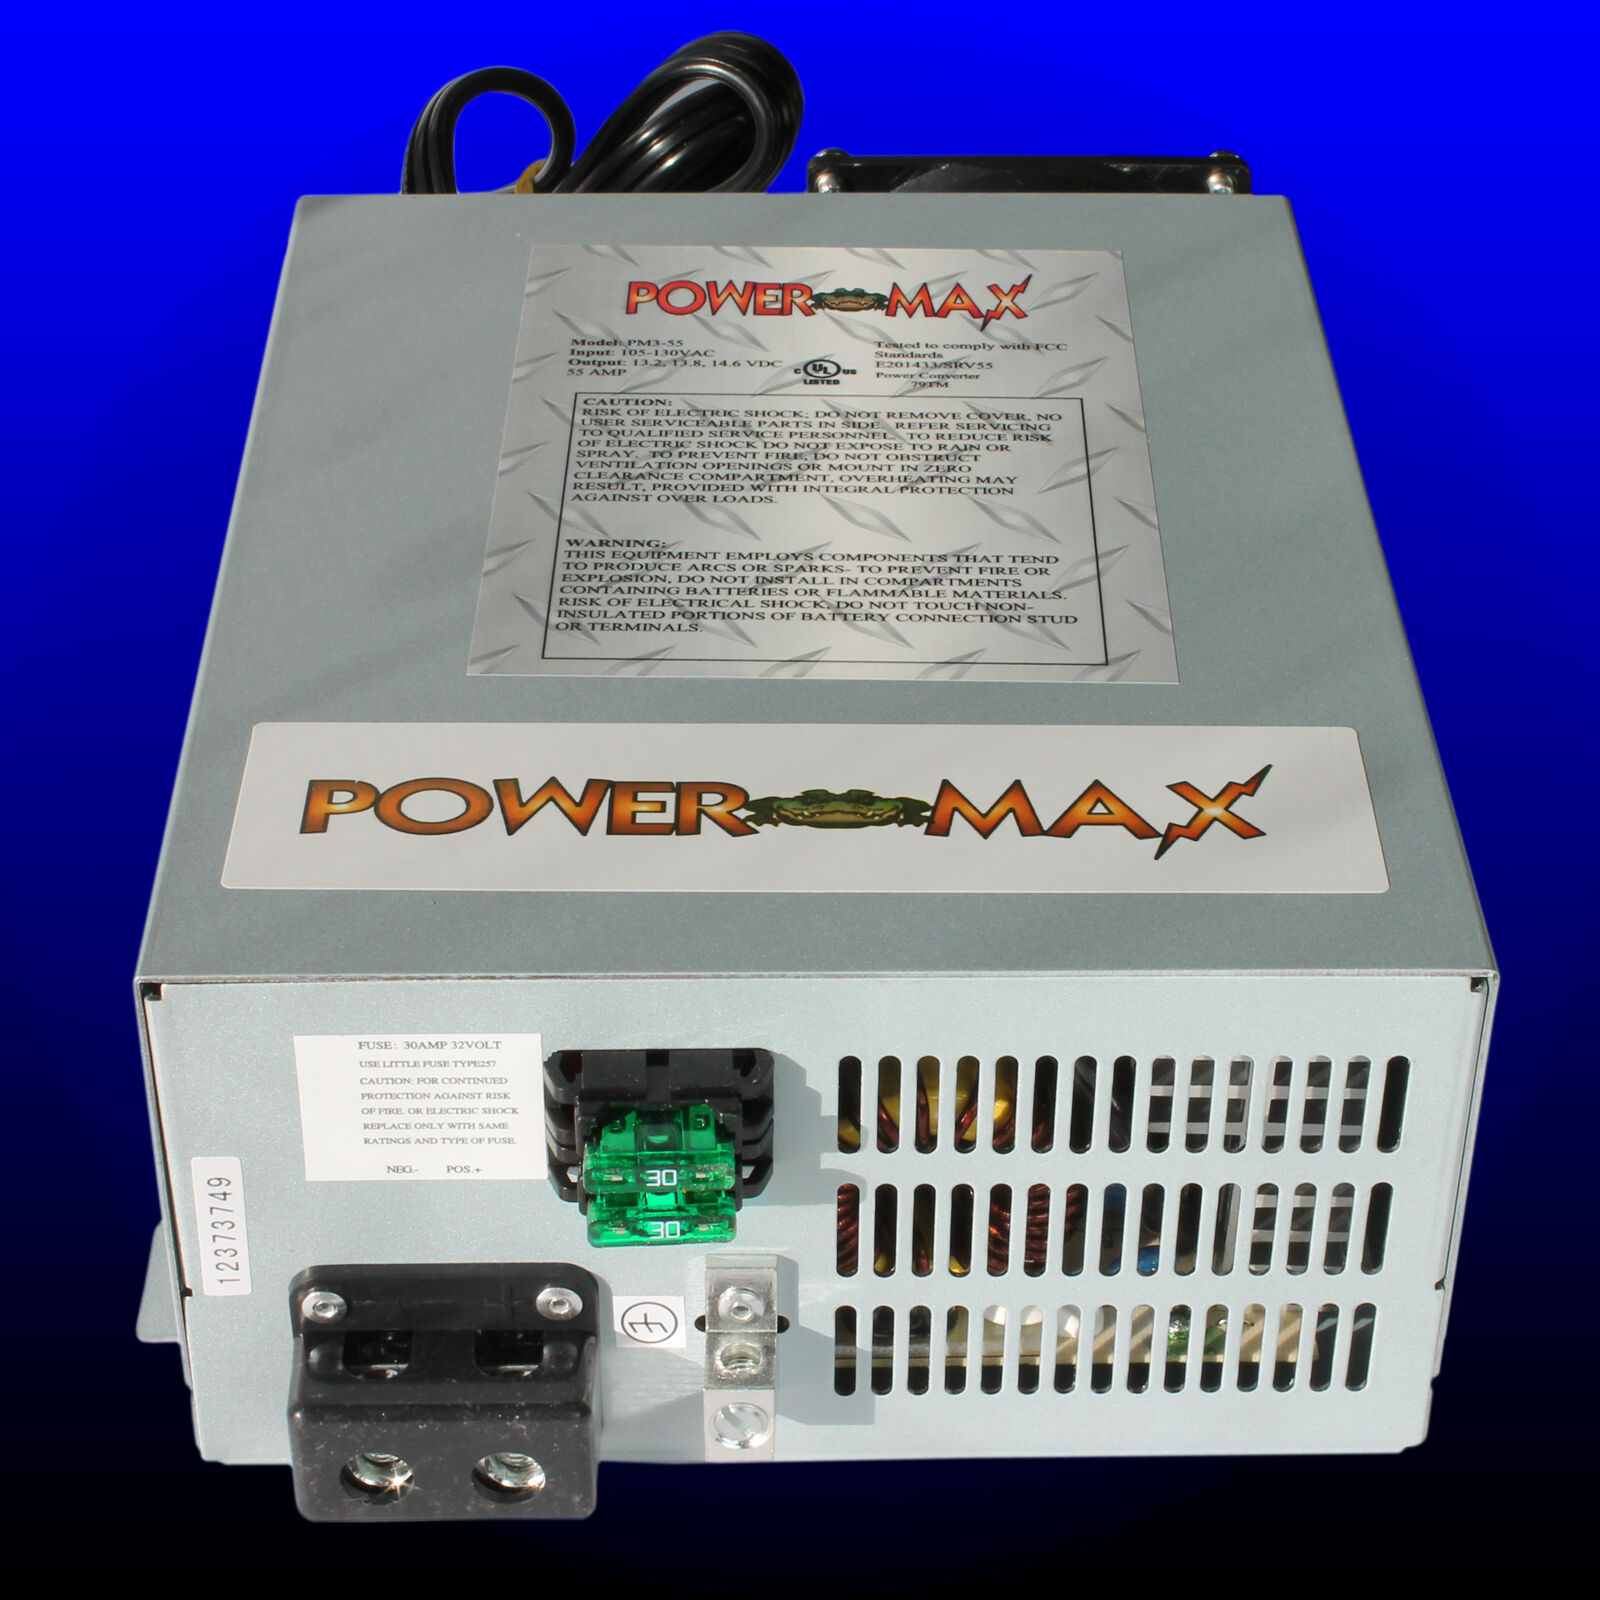 Powermax Rv Converter Battery Charger Pm3 55 Amp 120 V Ac To 12 Volt Wiring Dc 1 Of 4free Shipping See More